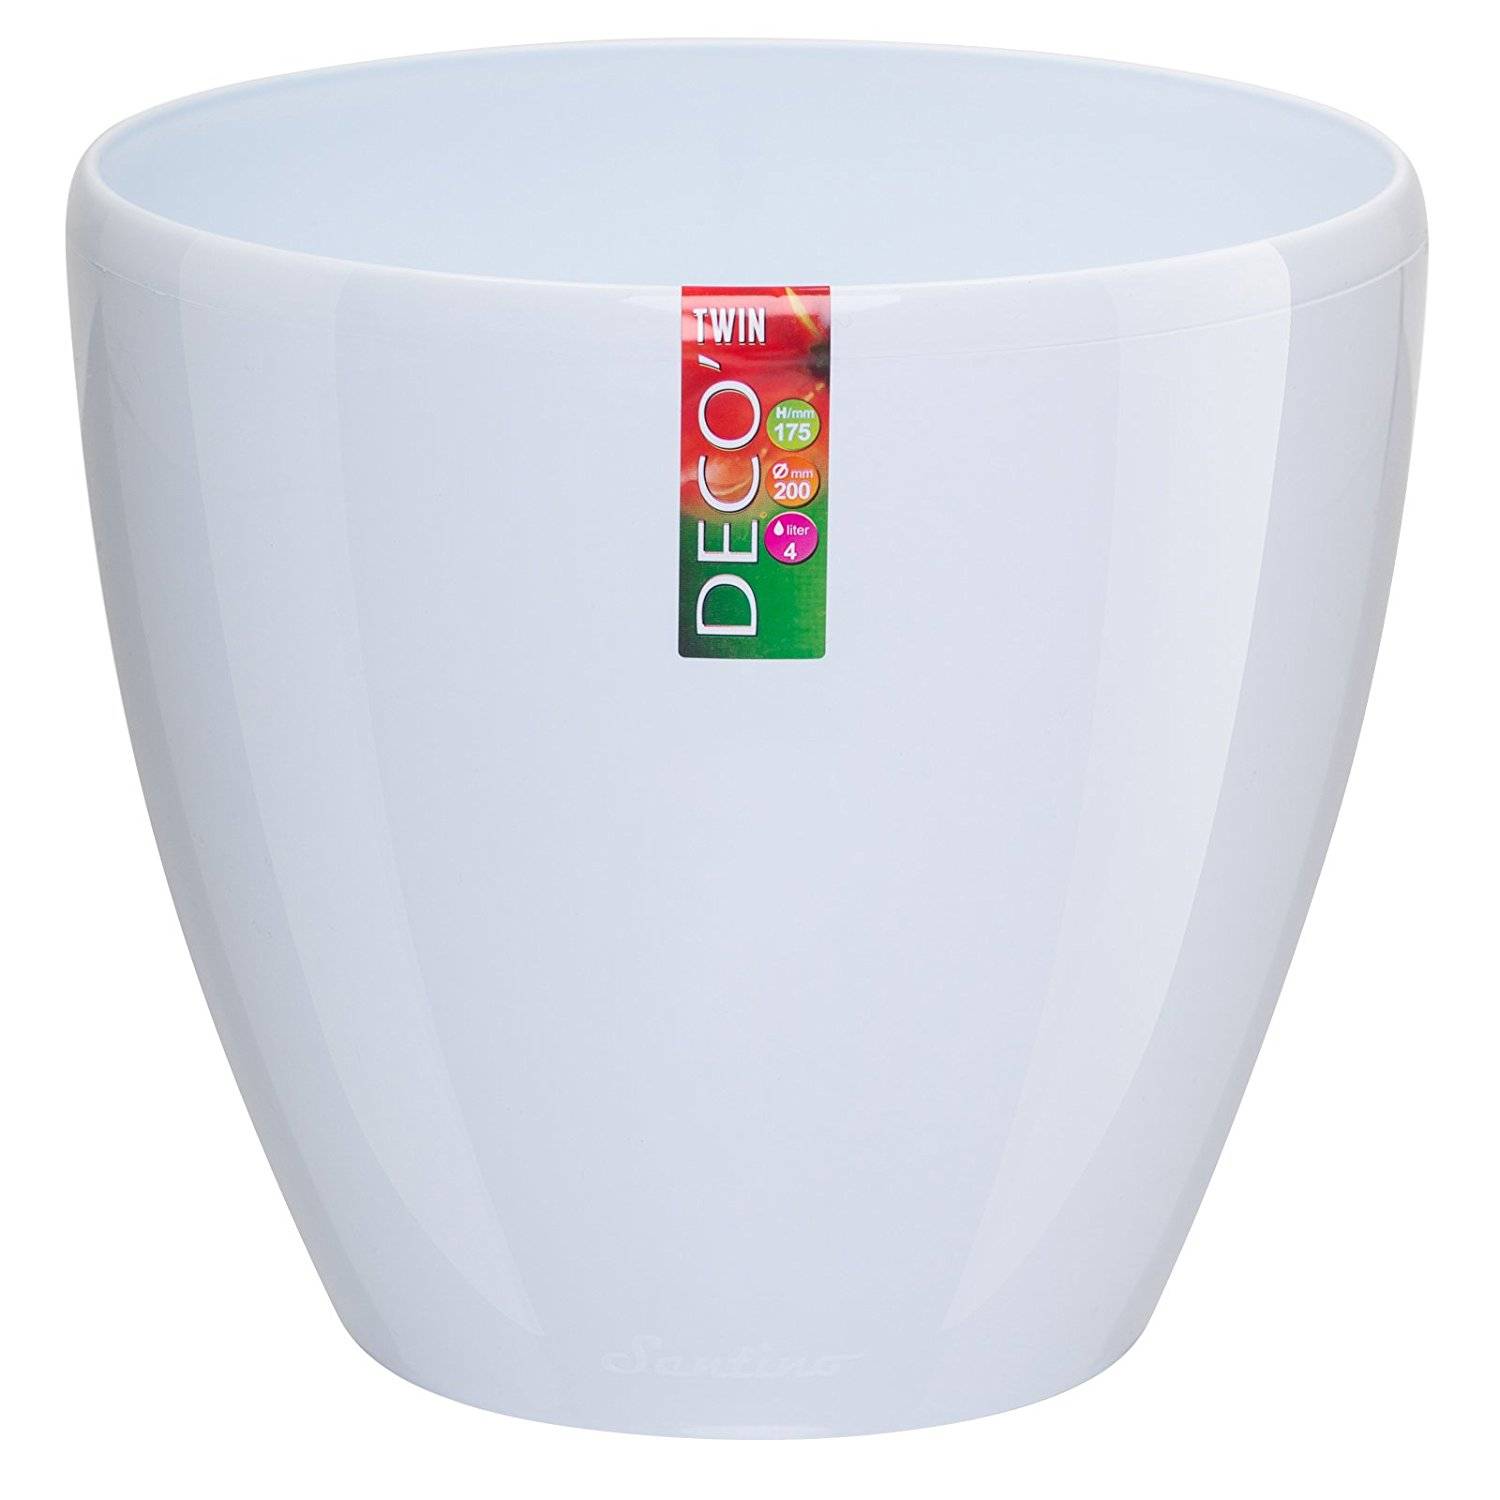 Santino Self Watering Planter DECO 6.7 Inch White Flower Pot